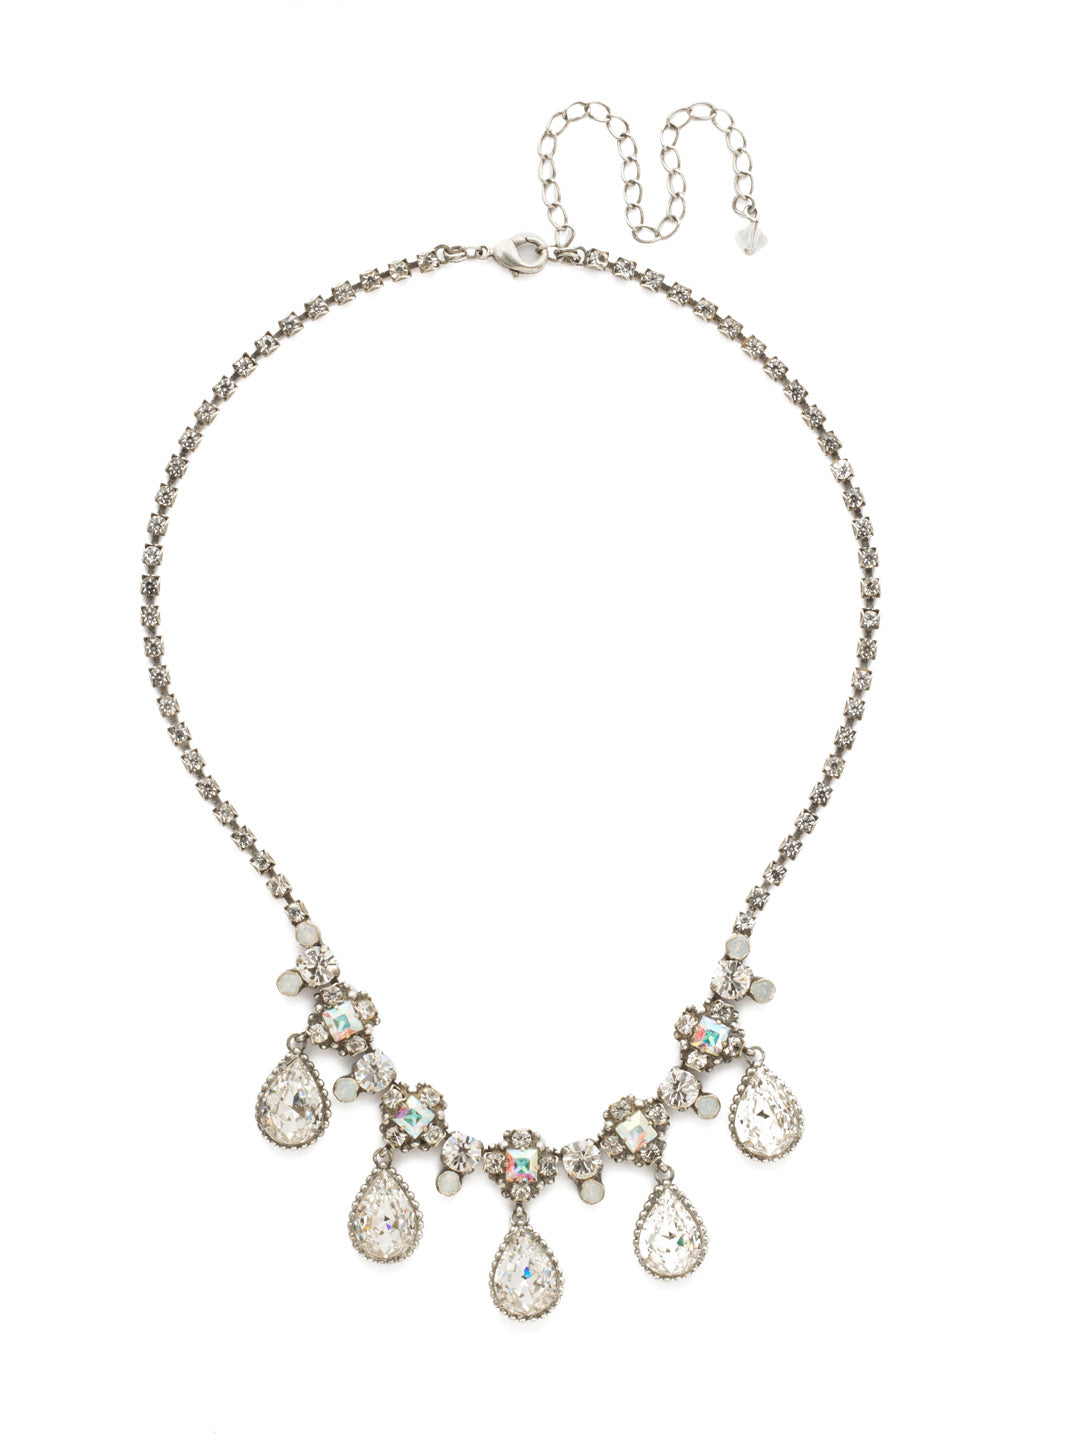 Posey Statement Necklace - NDT5ASWBR